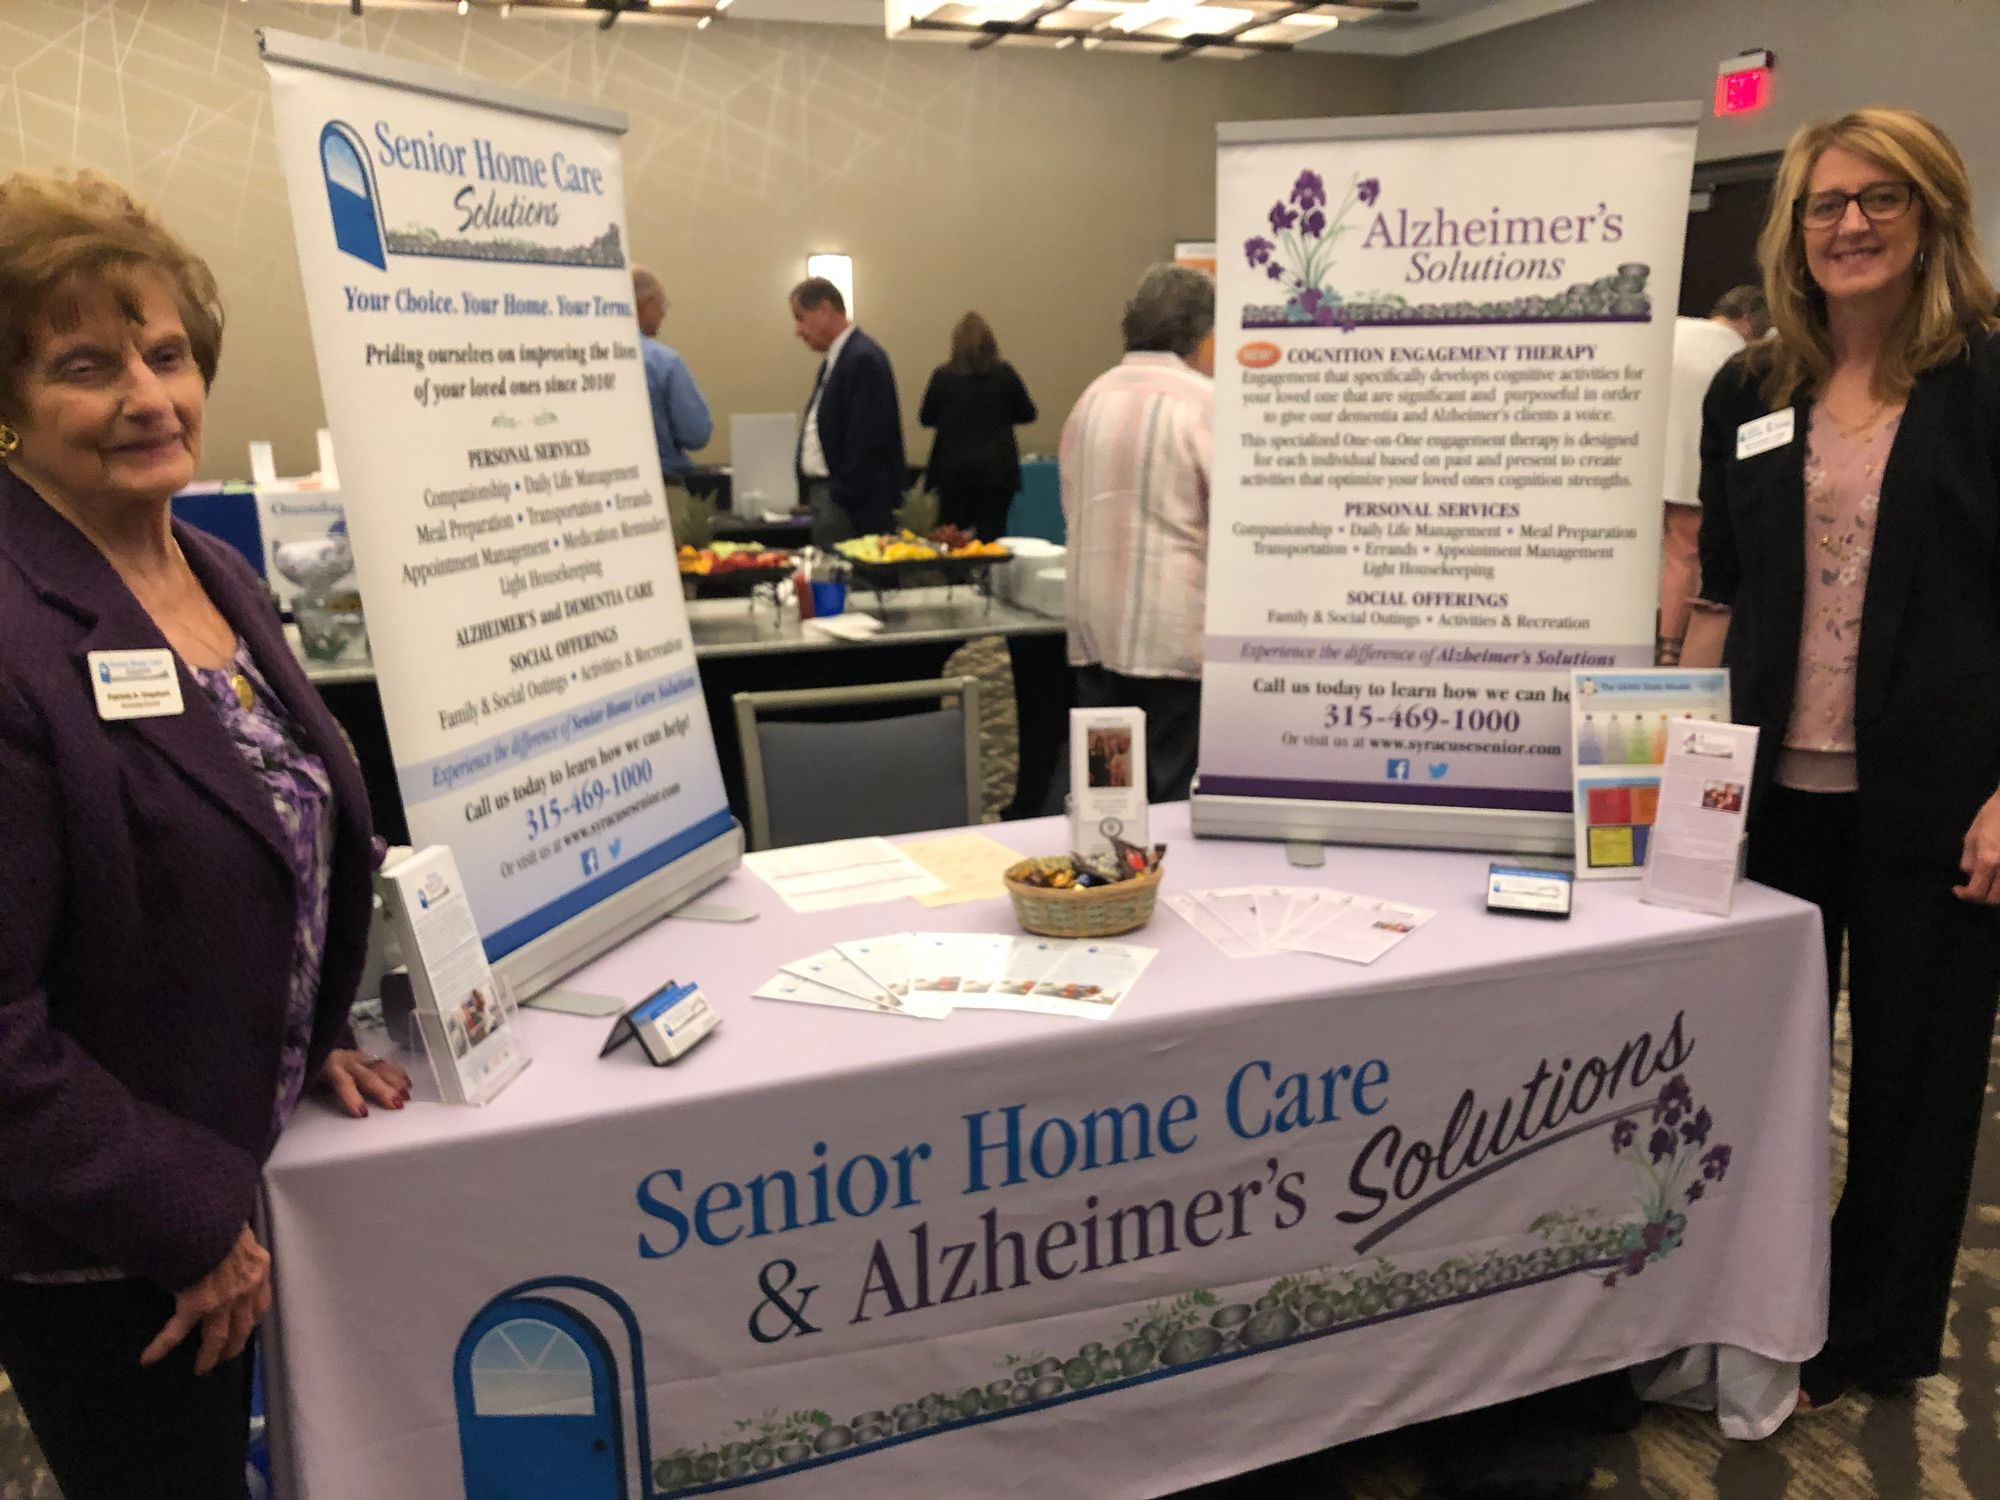 Senior Homecare